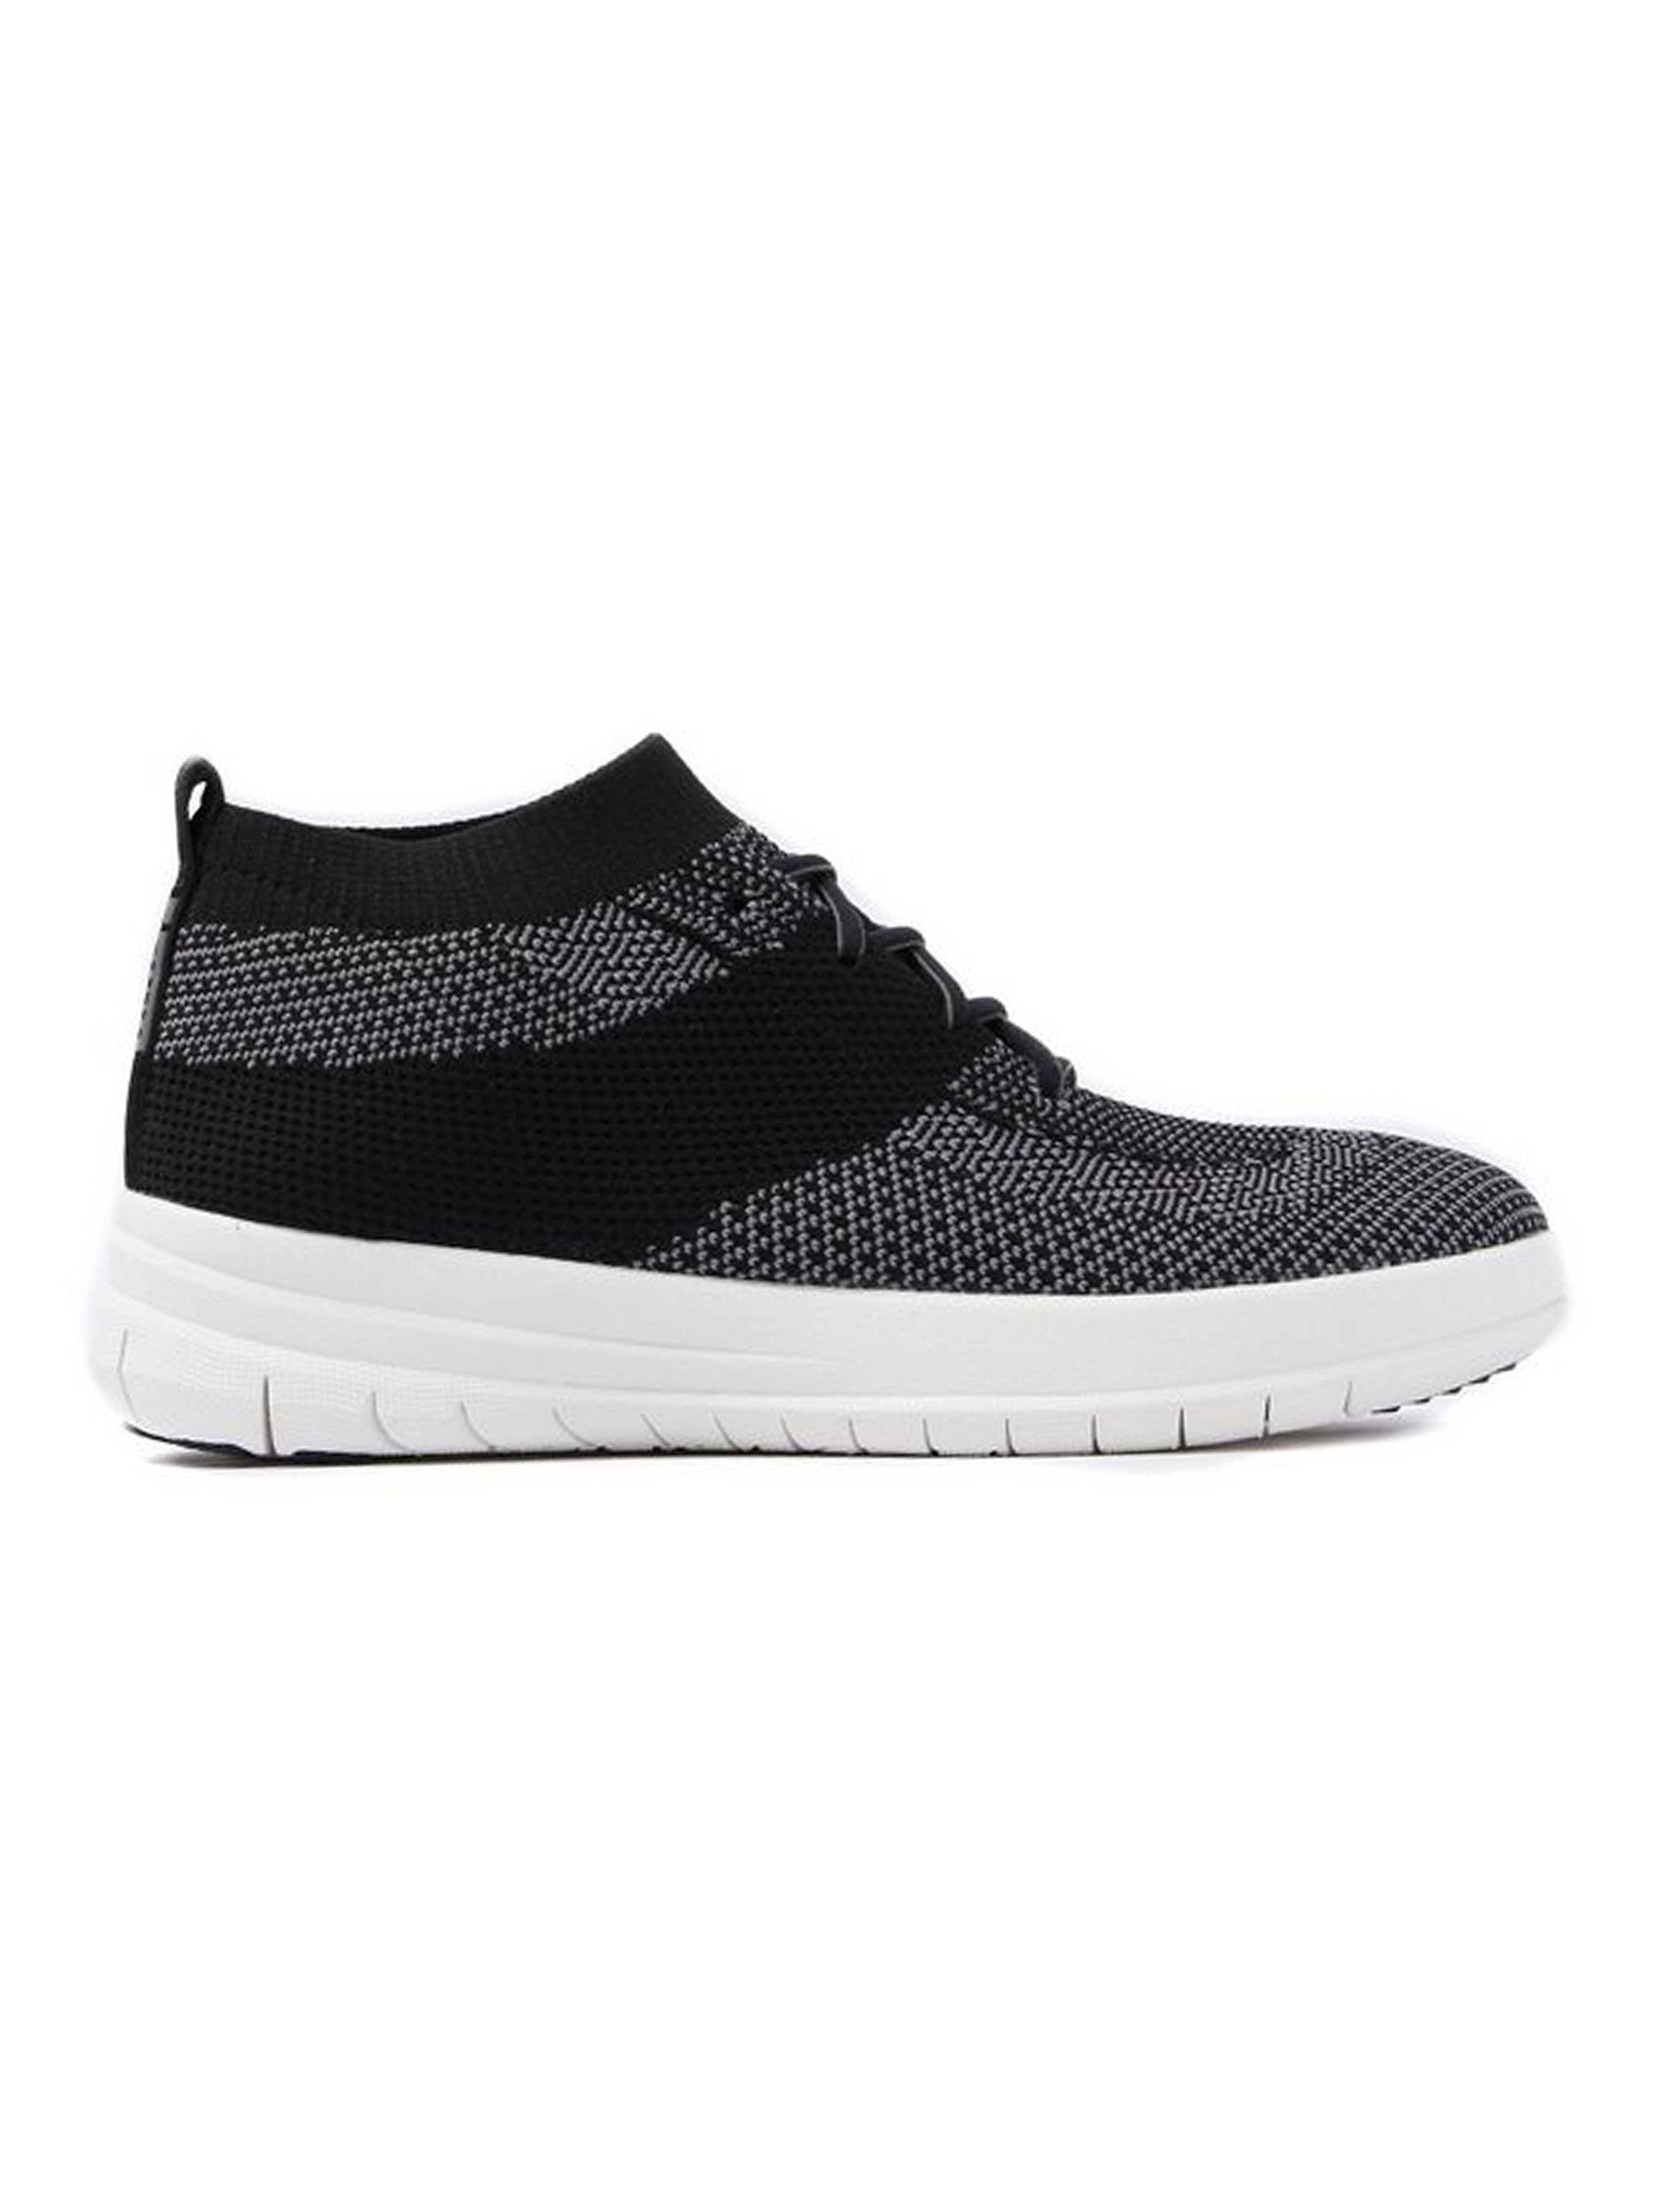 FitFlop Women's Überknit Slip-On High Top Trainers - Black & Charcoal